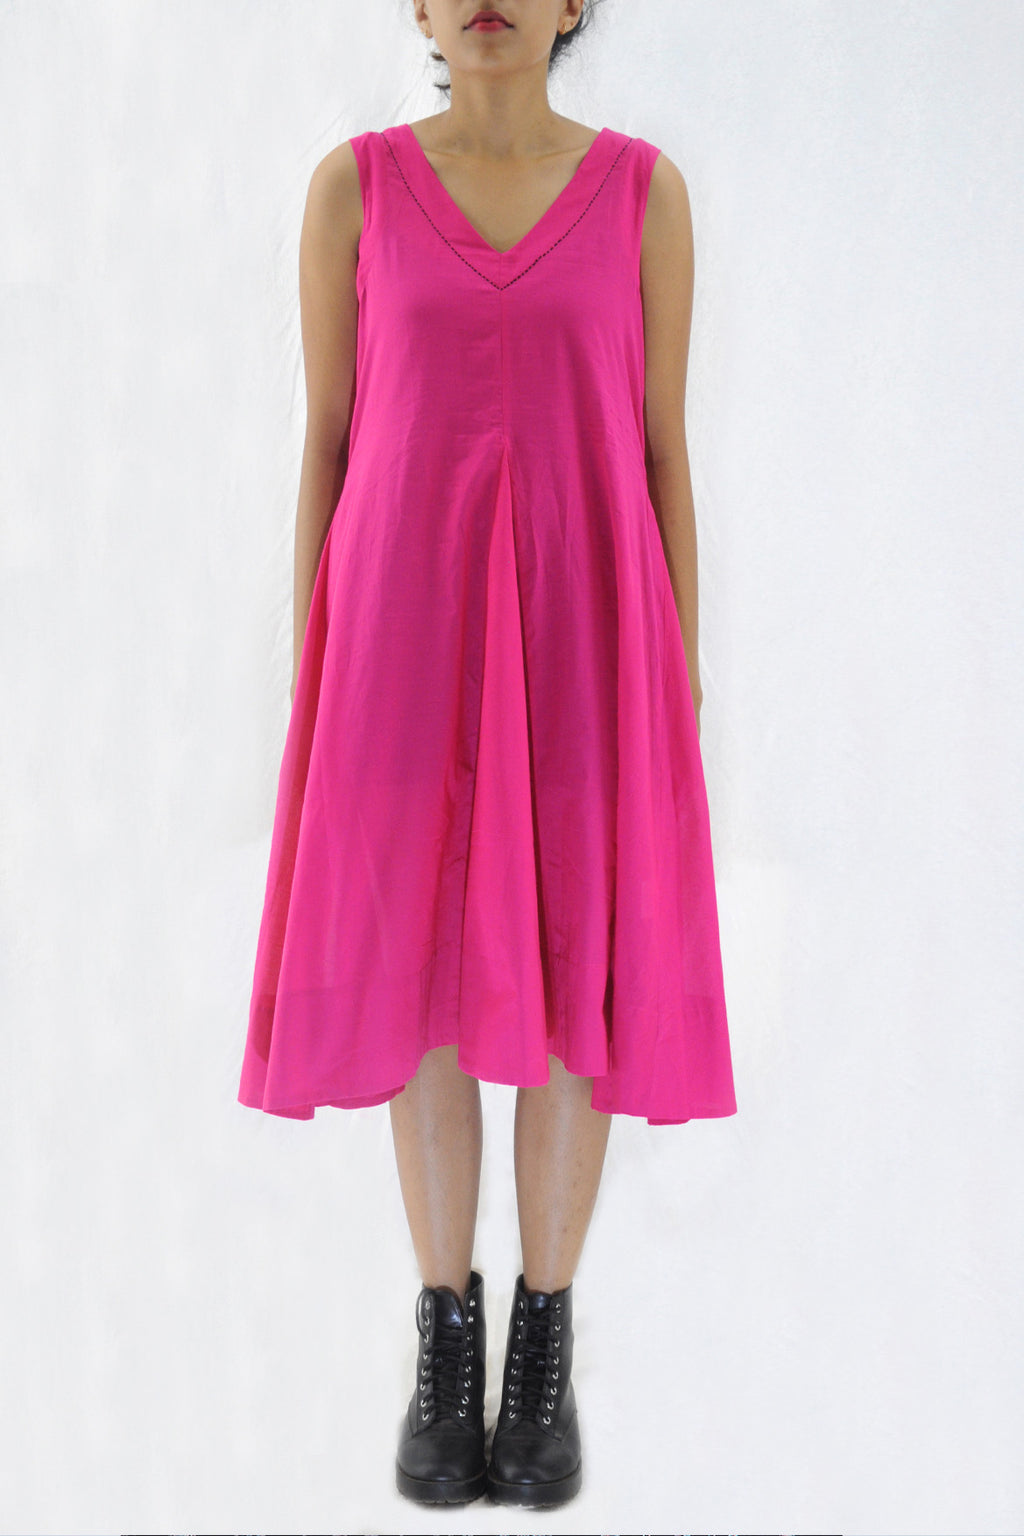 Nalini-Pink Organic cotton Dress - Upasana Design Studio